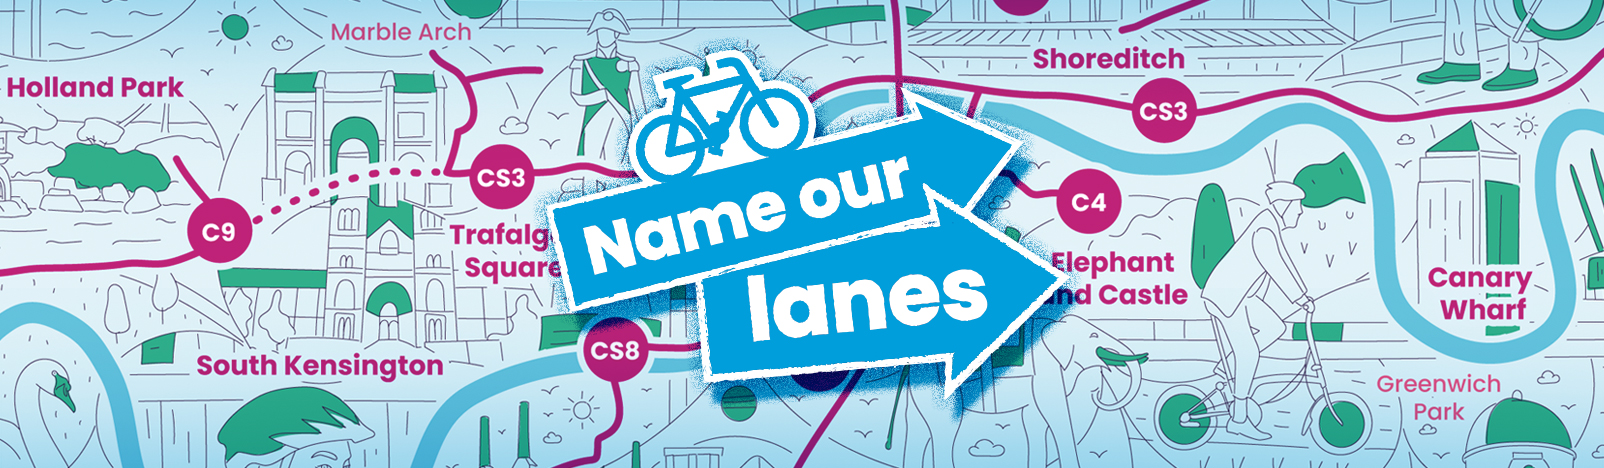 Name Our Lanes, Brompton Bicycle Possible climate charity